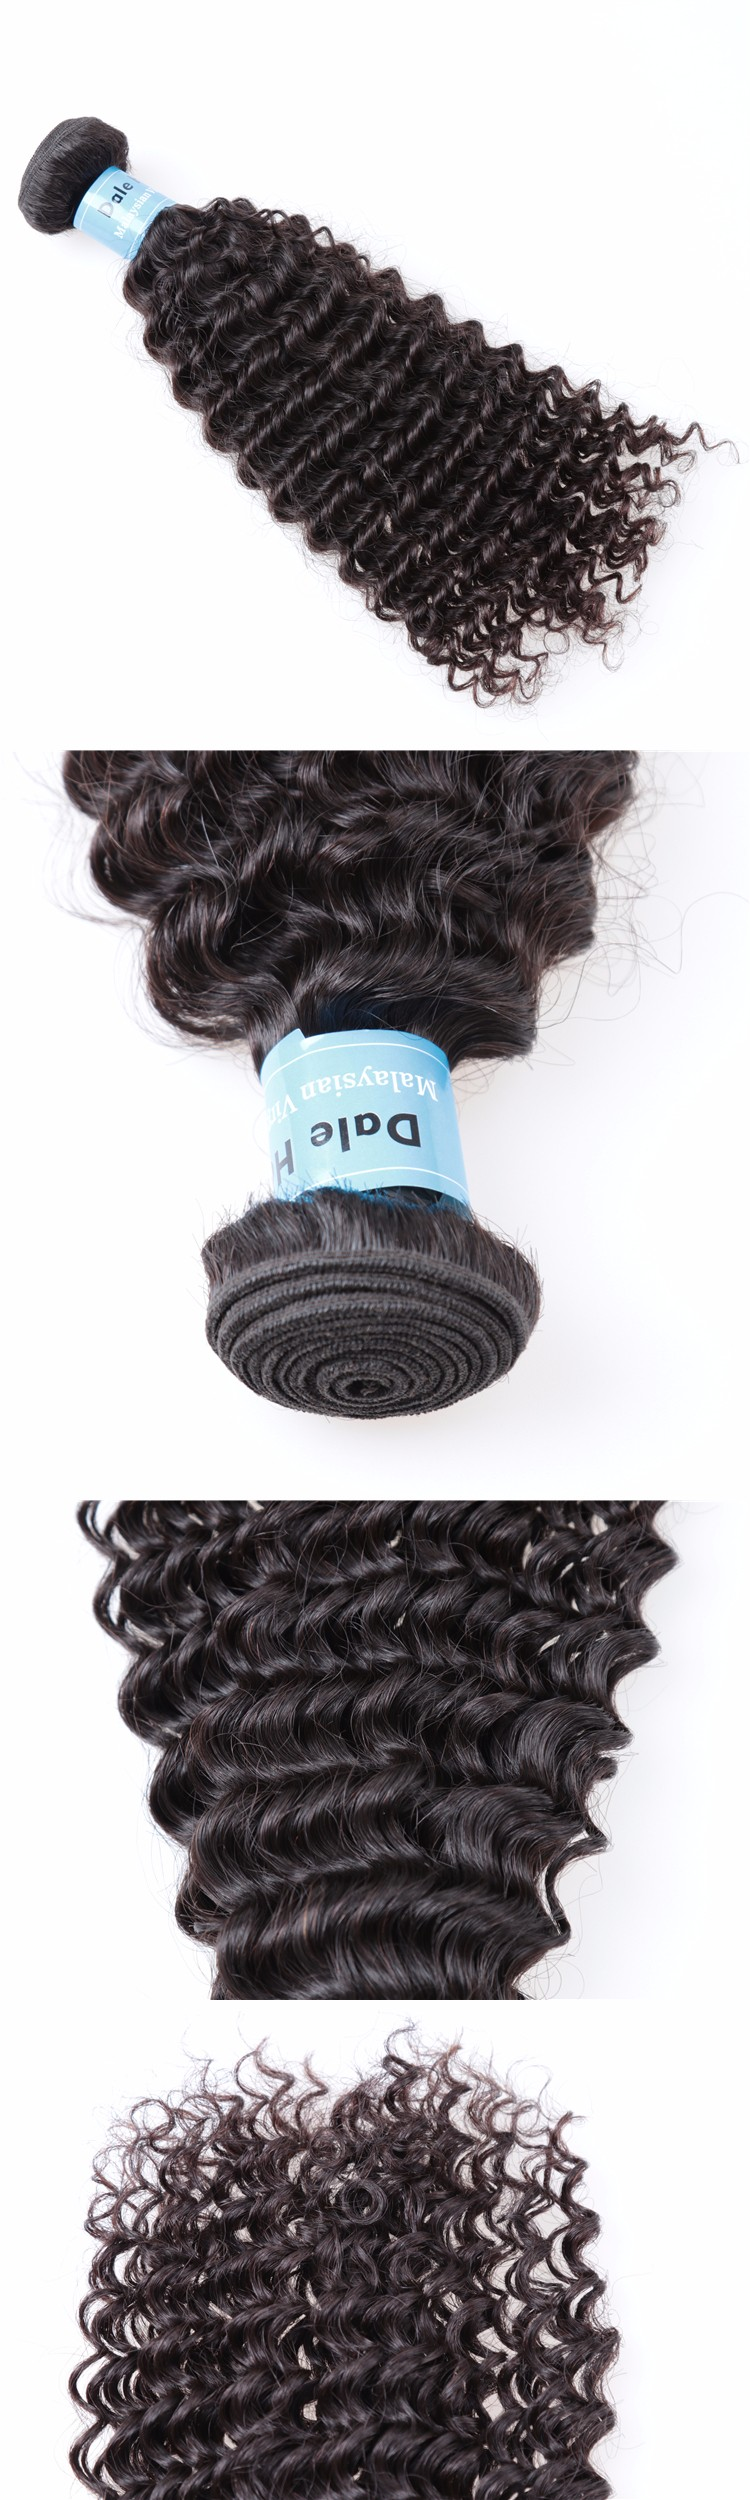 Best selling virgin human hair without any chemical adorable hair best selling virgin human hair without any chemical adorable hair extensions pmusecretfo Choice Image